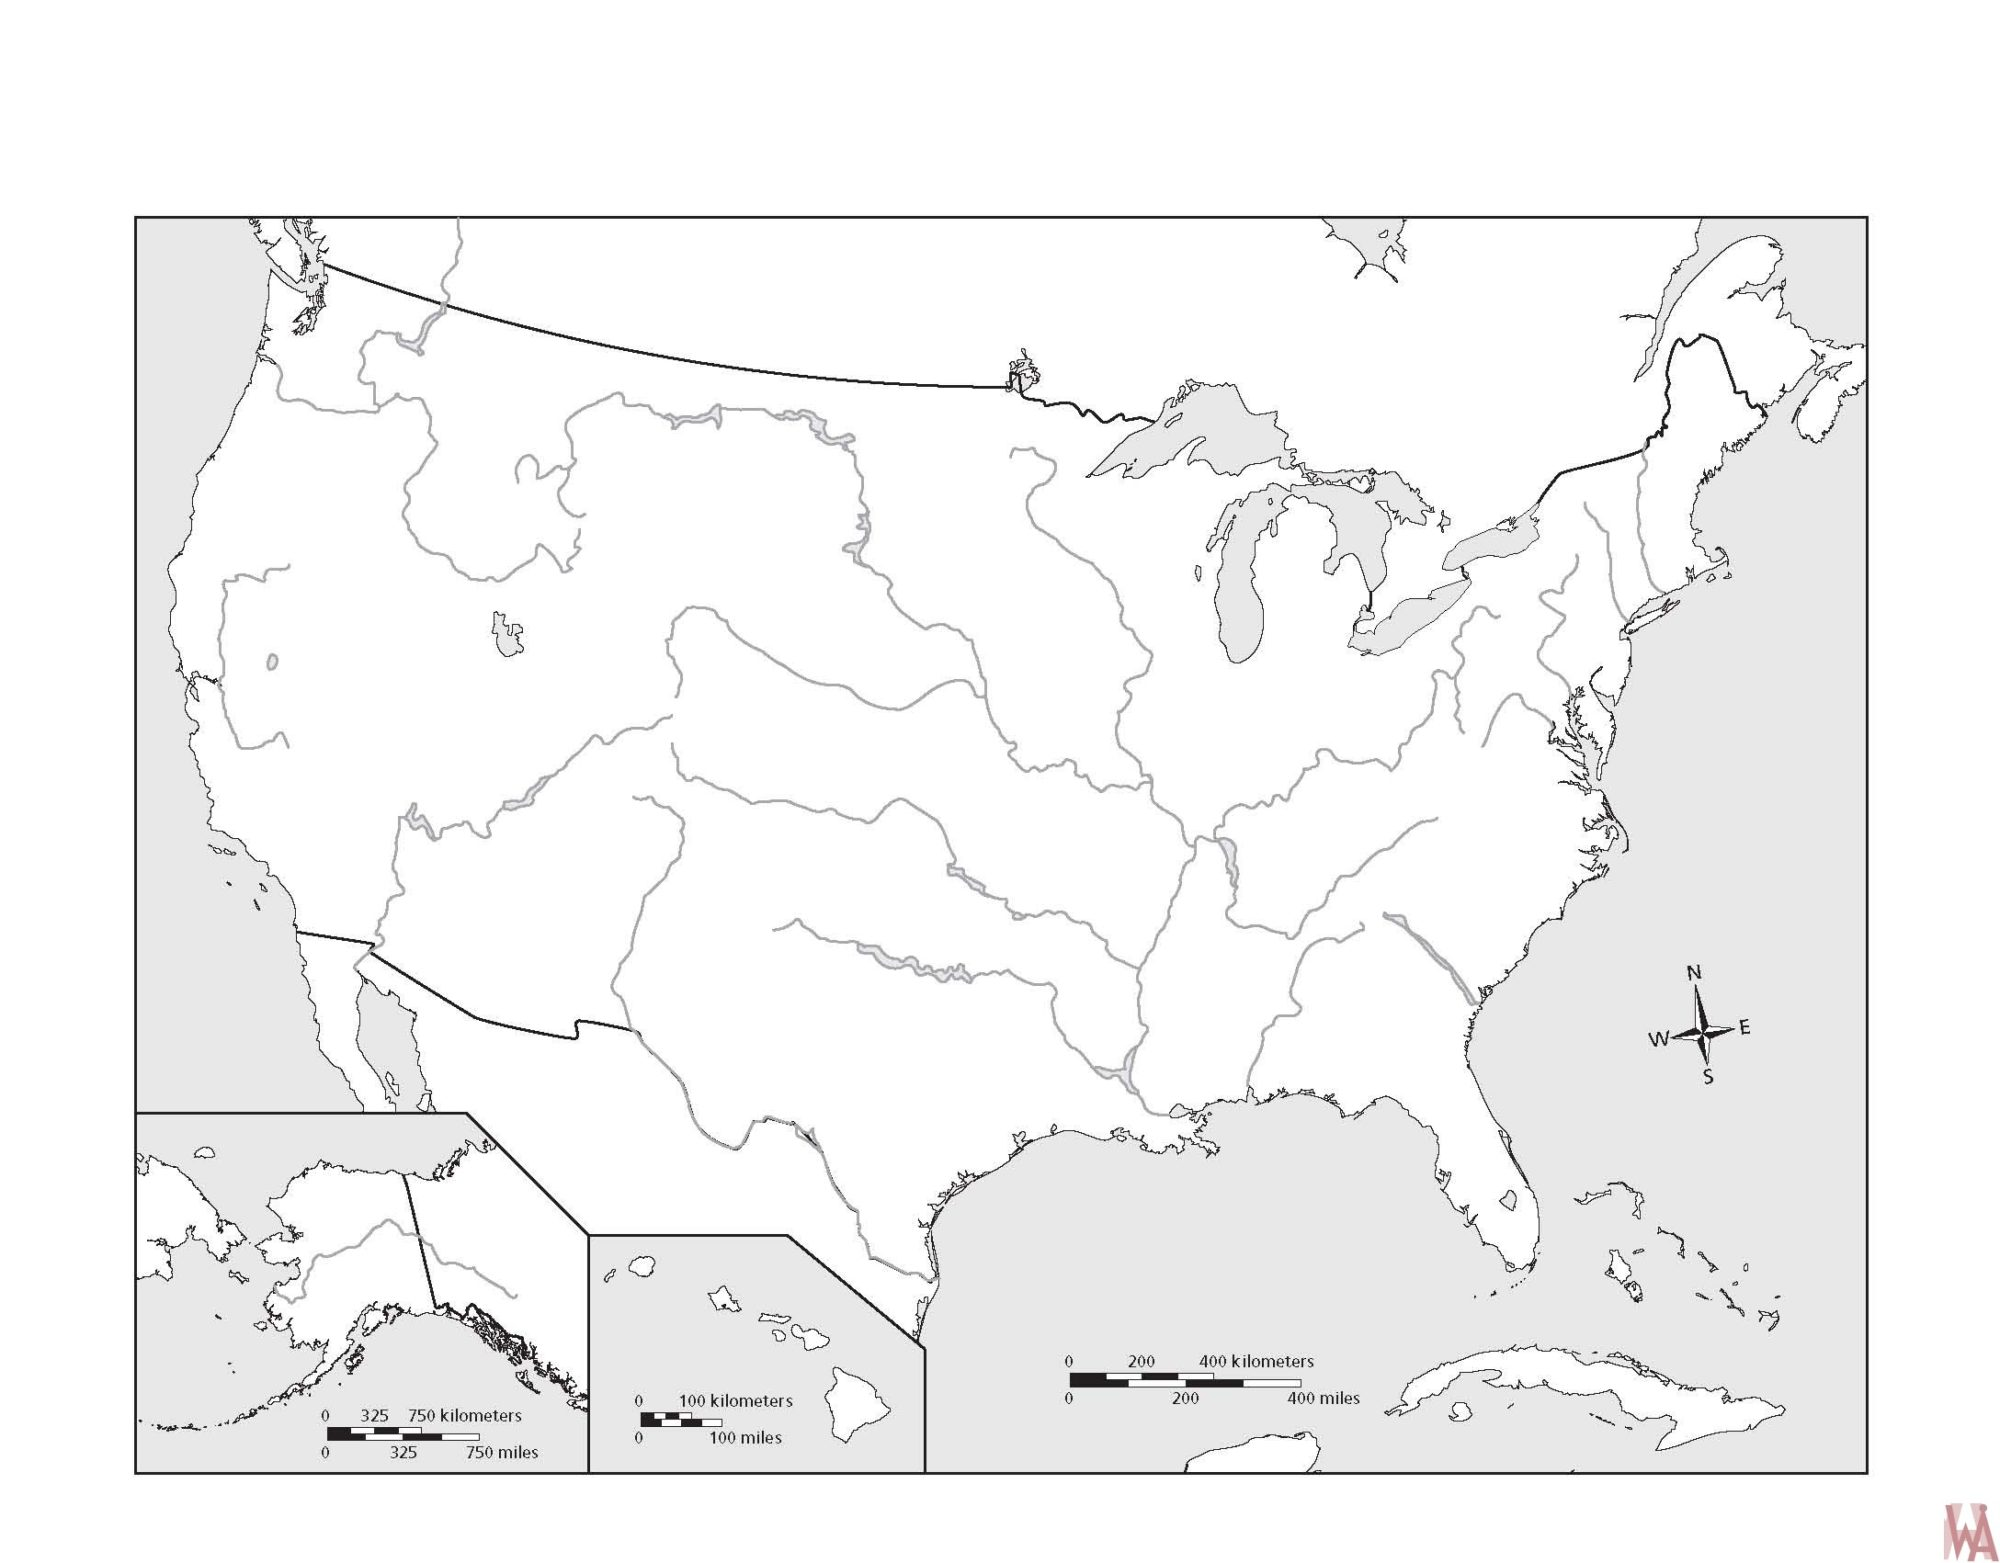 Blank outline map of the USA with major river | WhatsAnswer